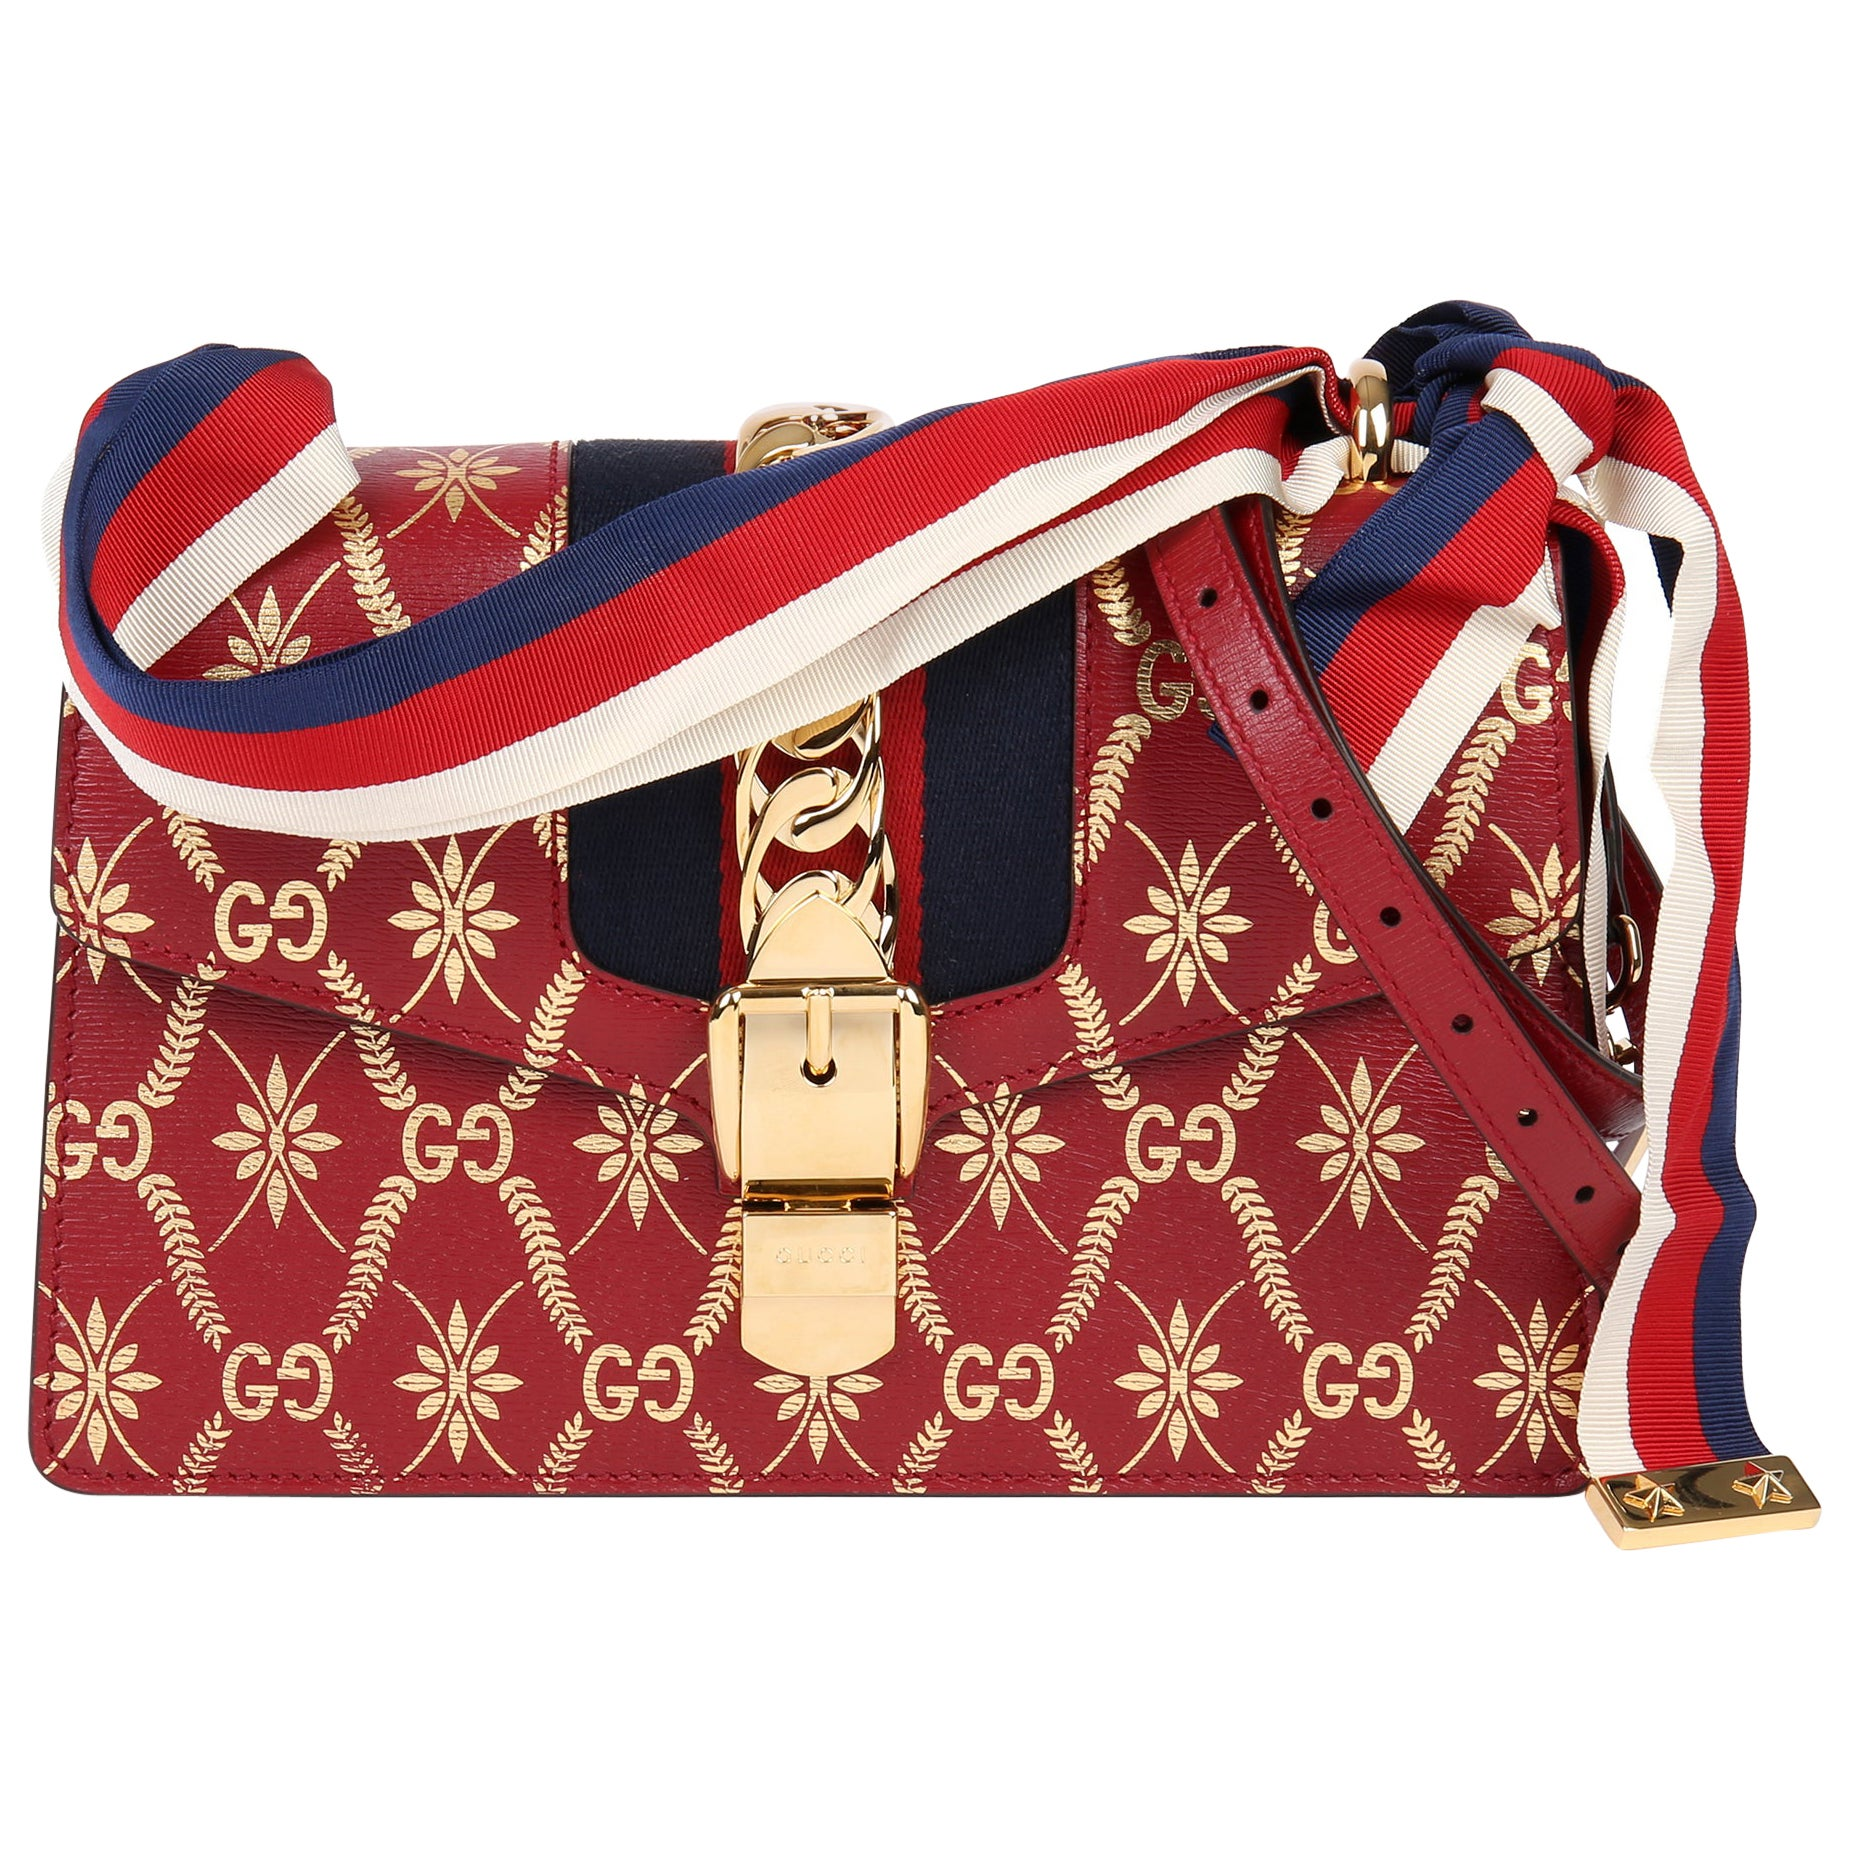 2021 Gucci Red & Gold Calfskin Leather Top Handle Small Sylvie